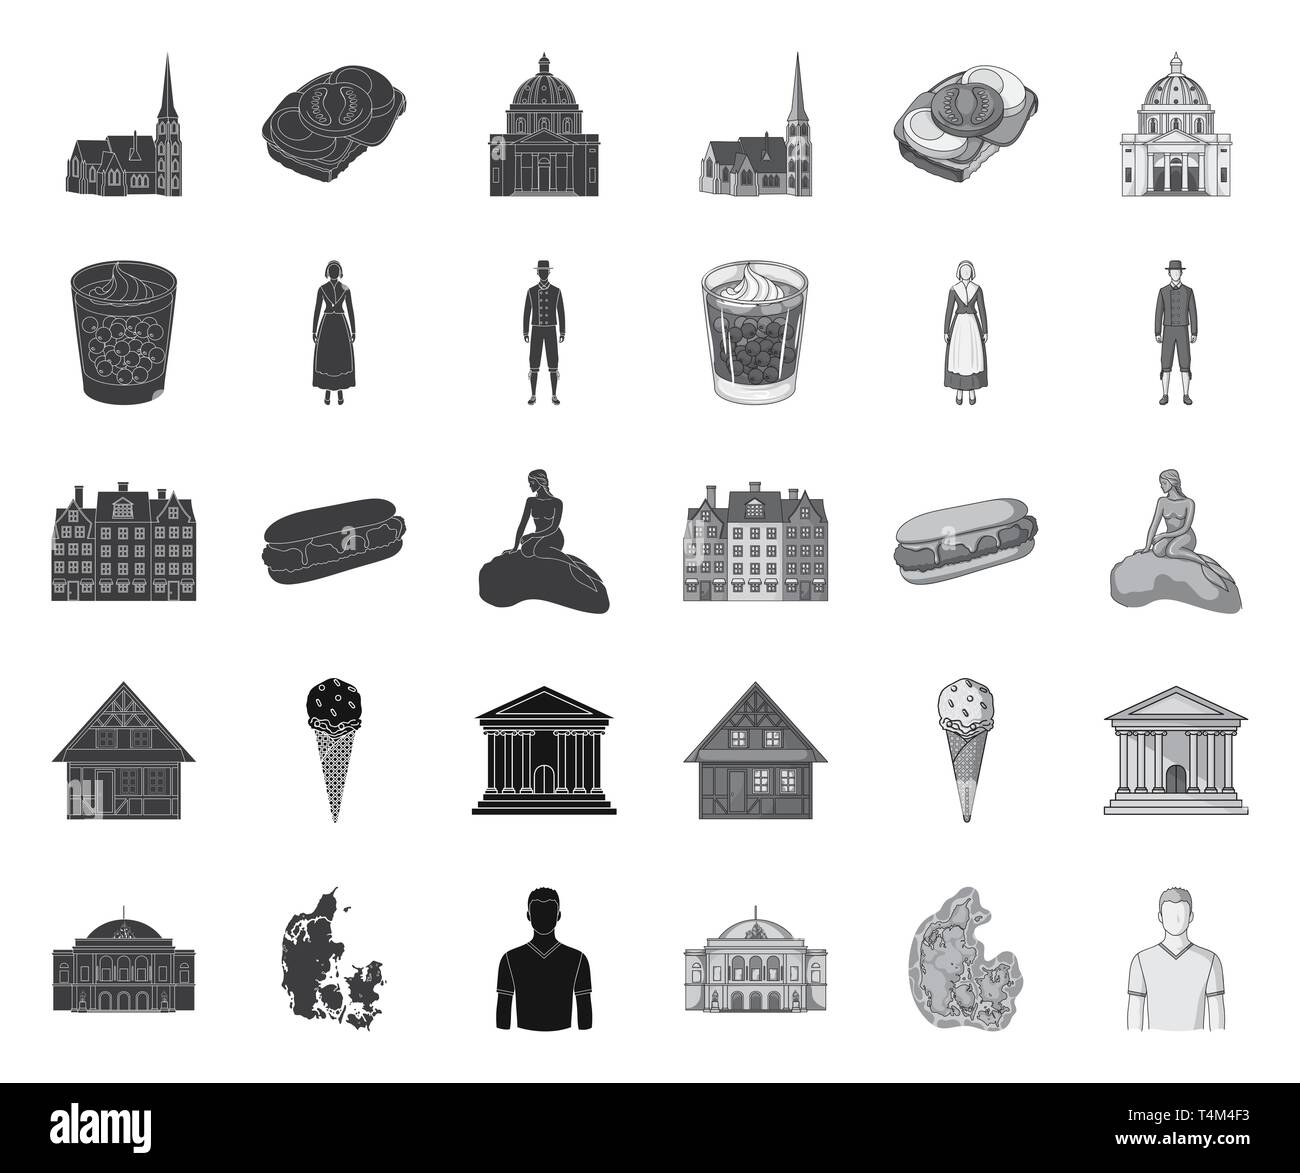 attributes,berries,black.mono,building,bust,collection,costume,country,crown,culture,custom,denmark,design,drawing,eggs,fairy tale,features,flag,function,gypsum,history,icon,illustration,interesting,isolated,man,map,mermaid,museum,national,palace,place,population,sandwich,sausage,sea,set,sign,signcountry,stone,symbol,territory,theater,tomatoes,tourism,tower,travel,vector,weapon,woman Vector Vectors , Stock Vector